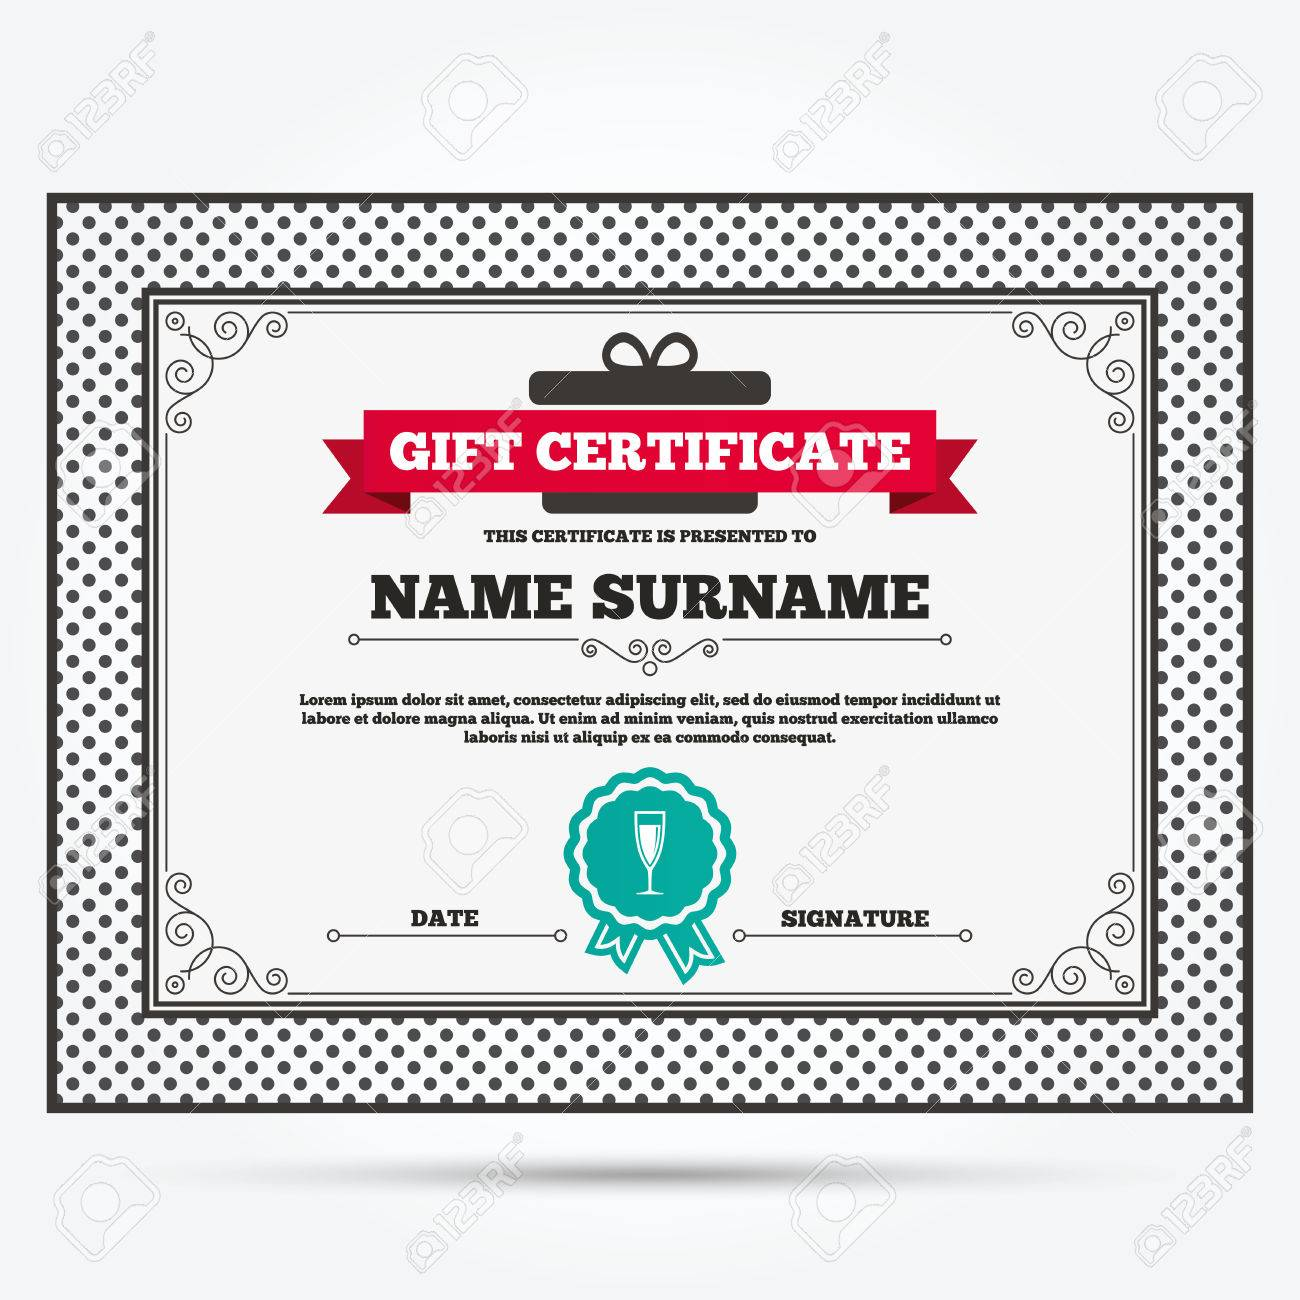 Gift certificate glass of champagne sign icon sparkling wine gift certificate glass of champagne sign icon sparkling wine celebration or banquet alcohol yelopaper Gallery